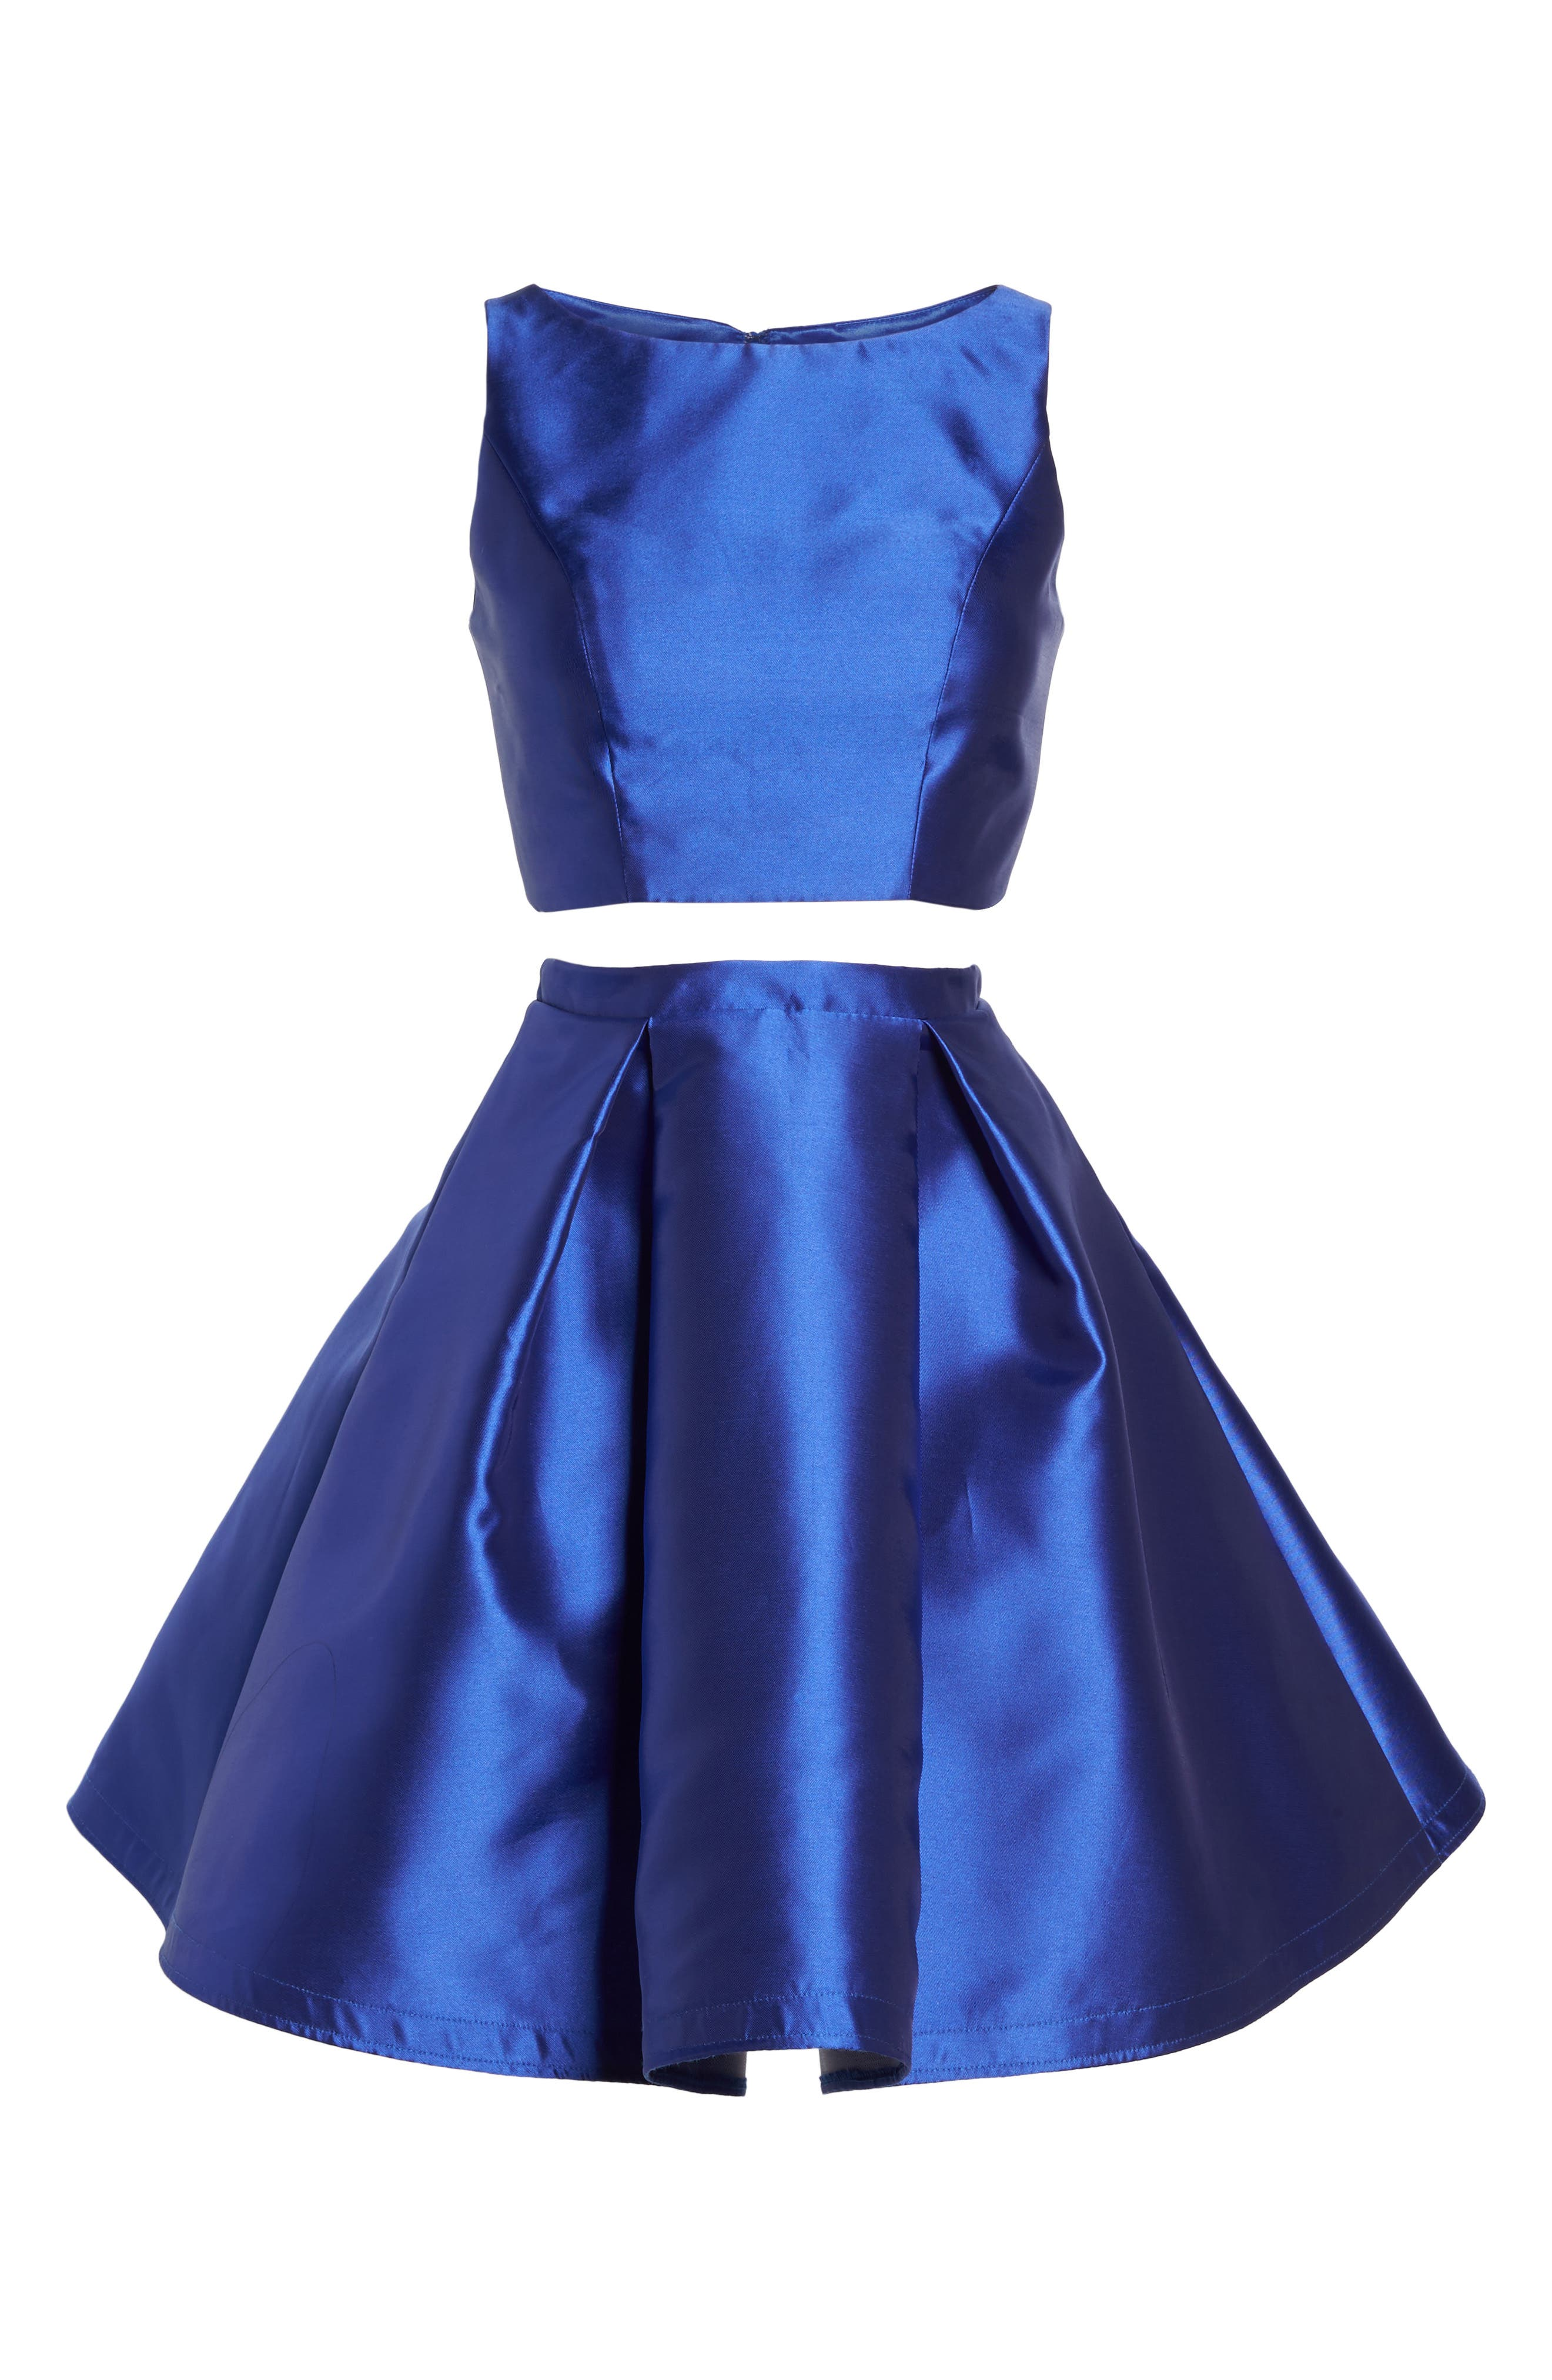 Skater Skirt Two-Piece Dress,                             Alternate thumbnail 5, color,                             Sapphire